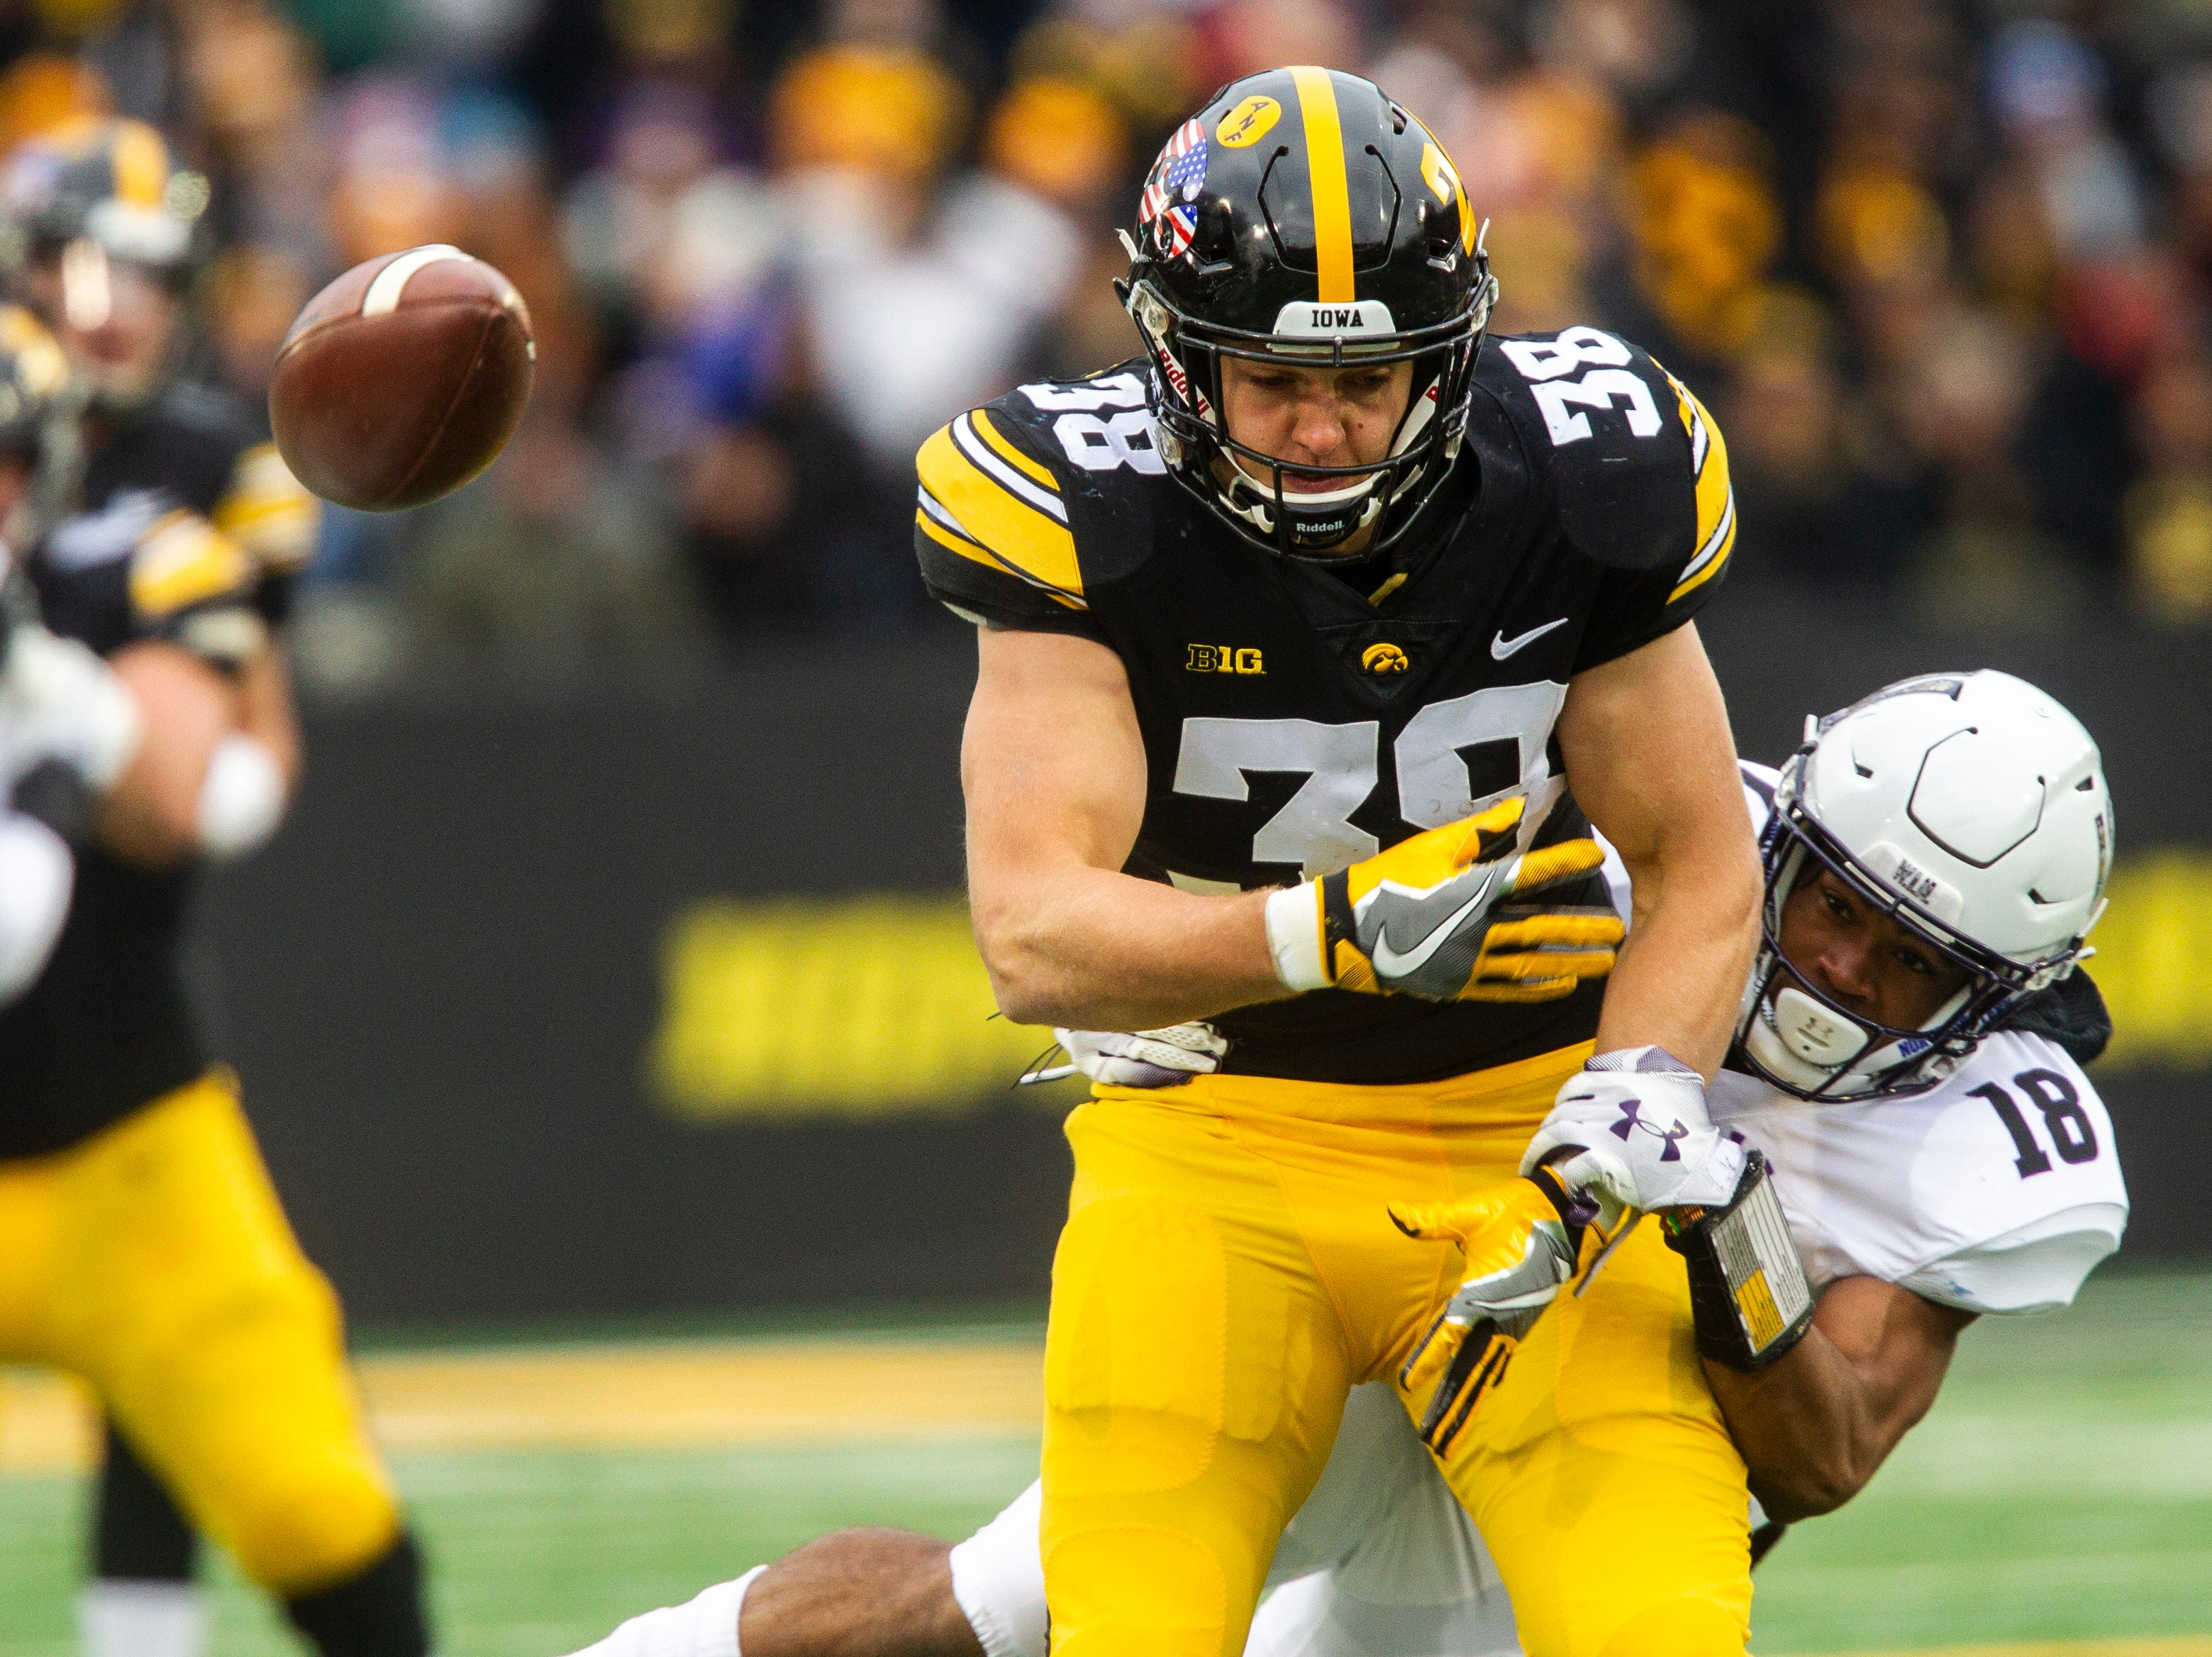 Iowa tight end T.J. Hockenson (38) can't come up with a reception while being covered by Northwestern's Cameron Ruiz (18) during a Big Ten Conference football game on Saturday, Nov. 10, 2018, at Kinnick Stadium in Iowa City.